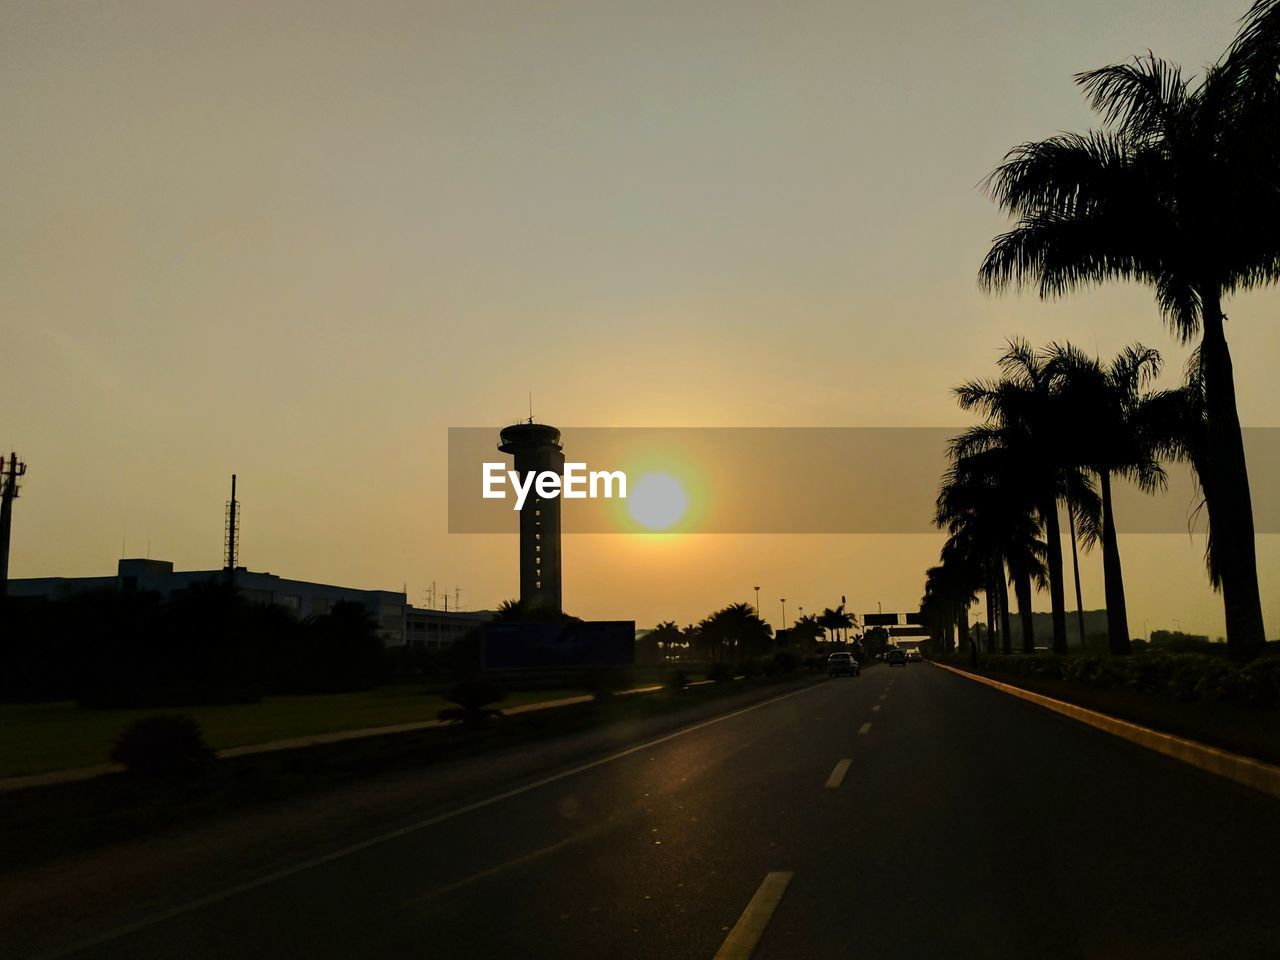 sunset, road, silhouette, tree, no people, sun, transportation, sky, the way forward, palm tree, built structure, outdoors, architecture, nature, city, day